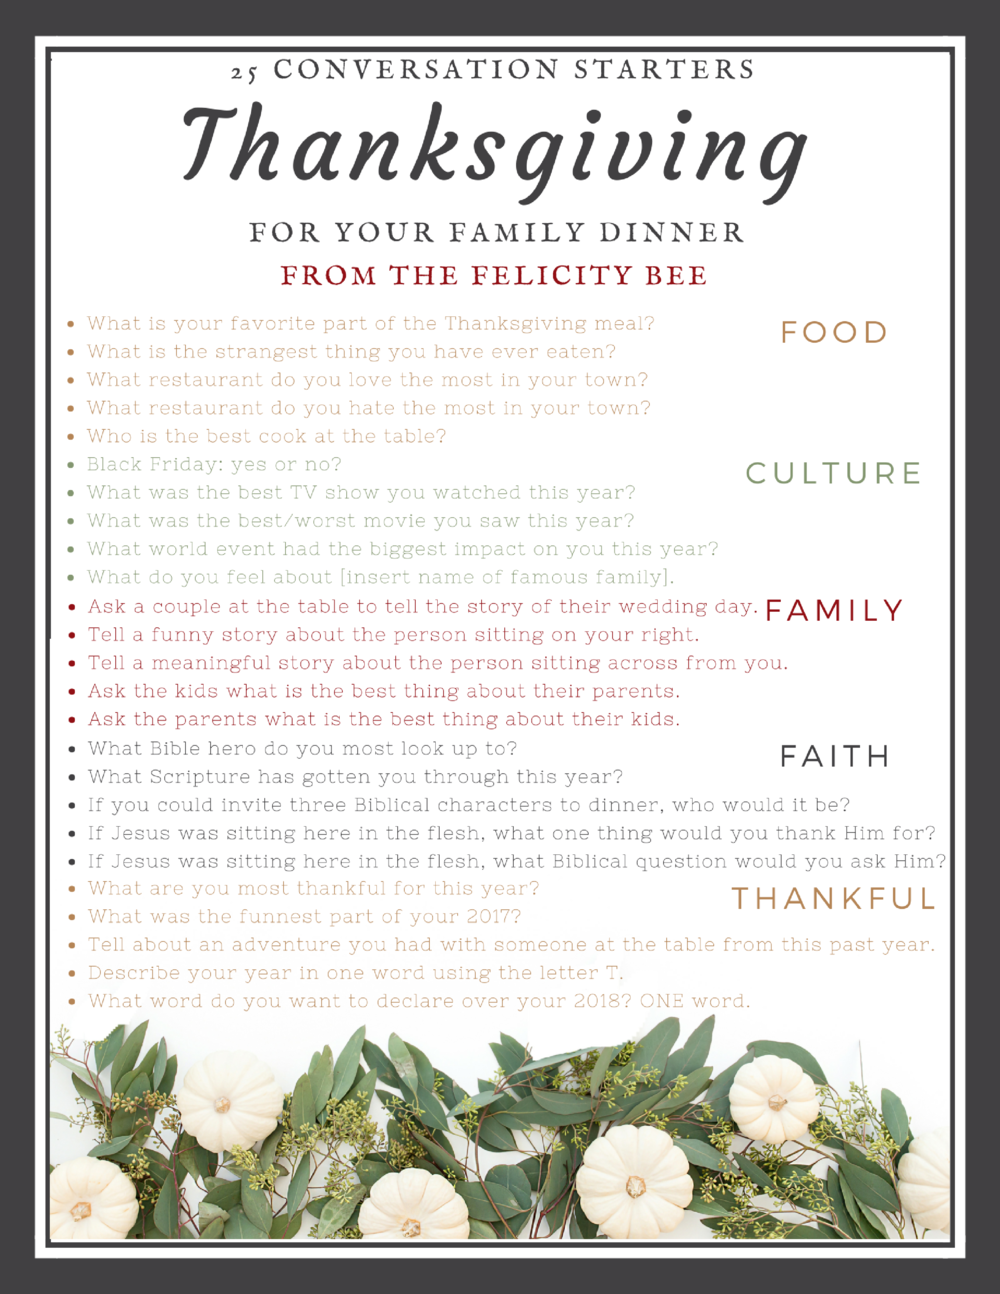 CLICK HERE  to download a printable version for everyone at your table.